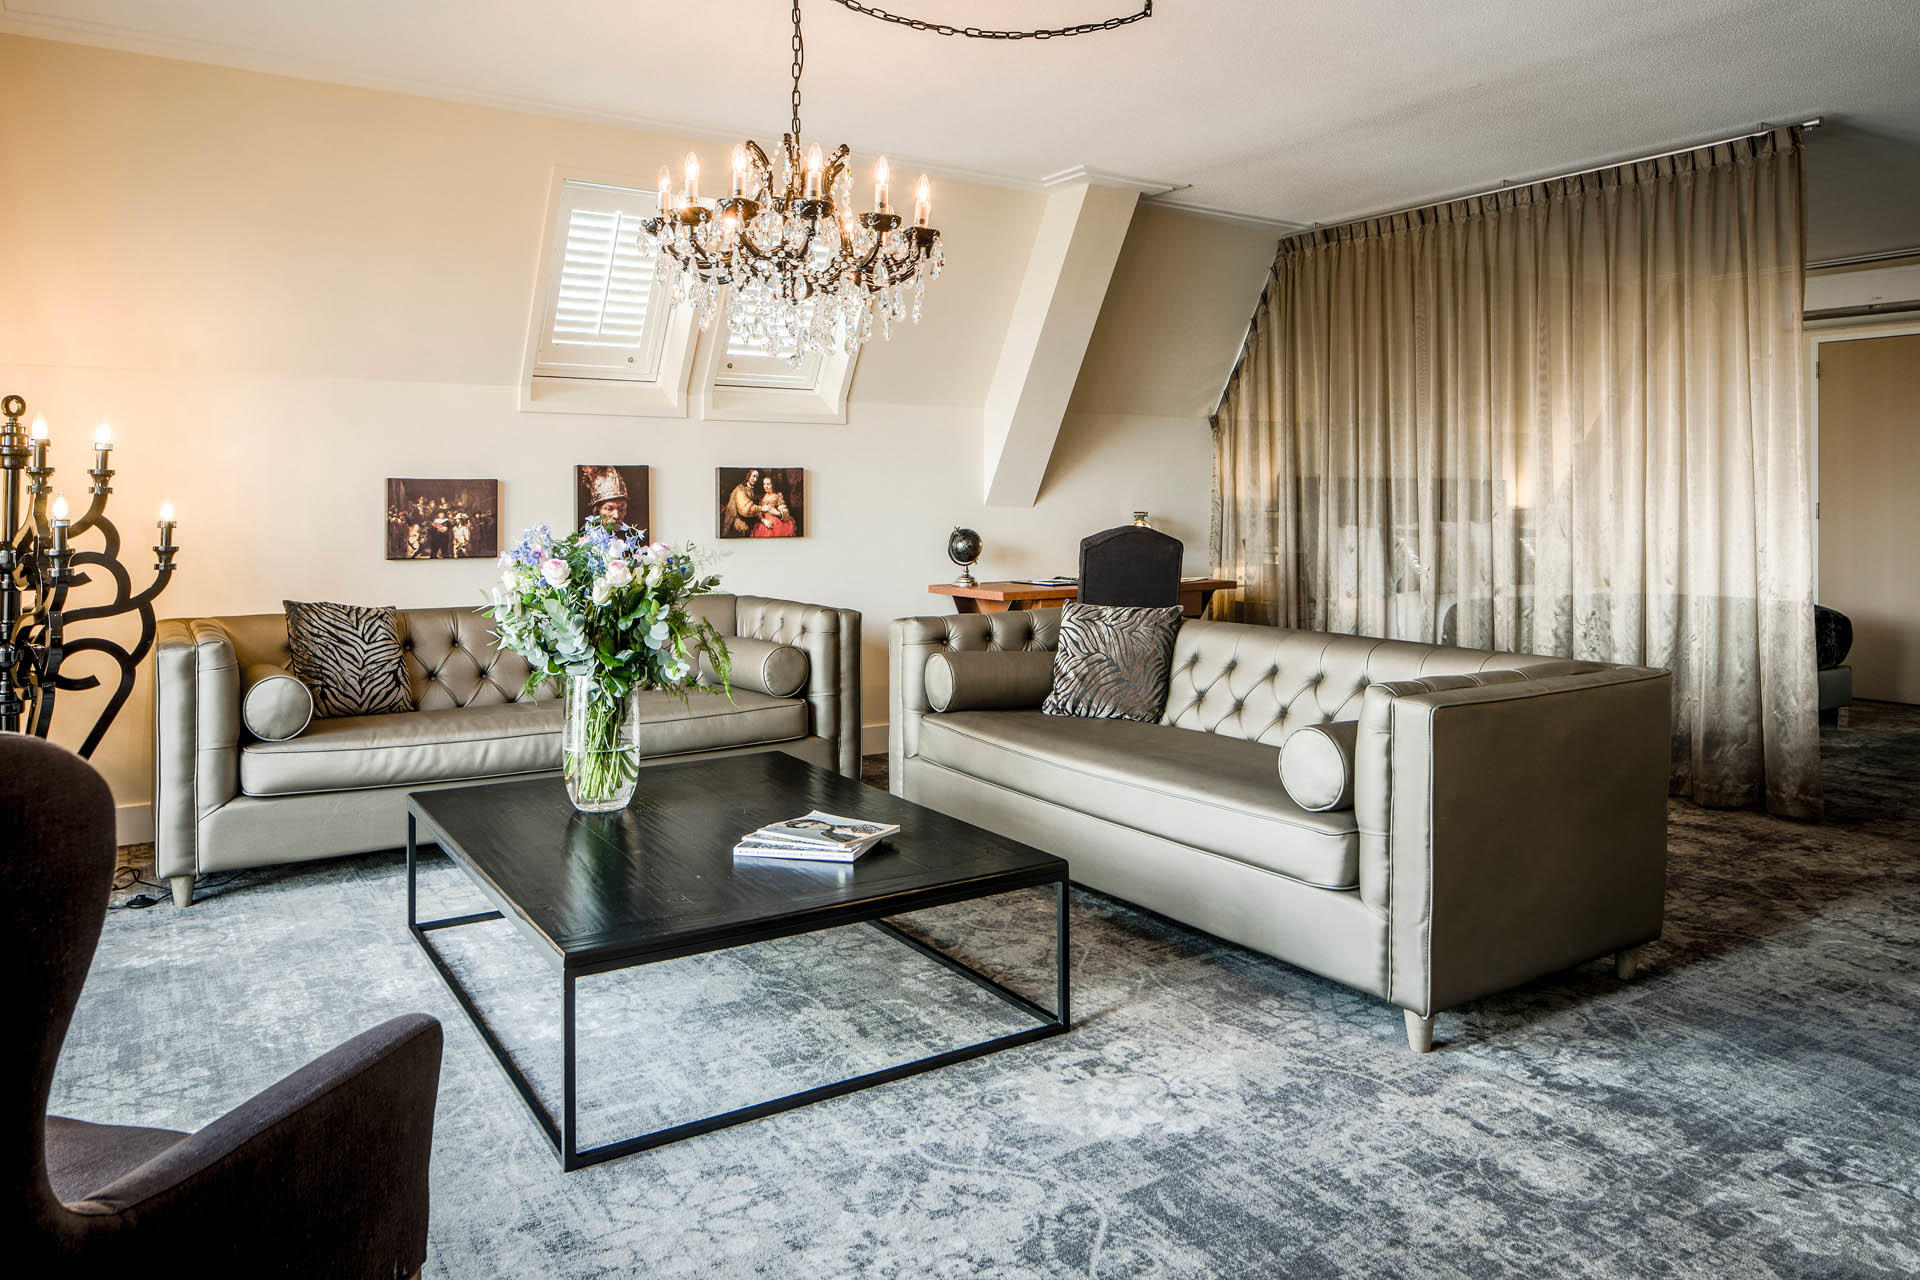 Imperial Suite at Luxury Suites Amsterdam